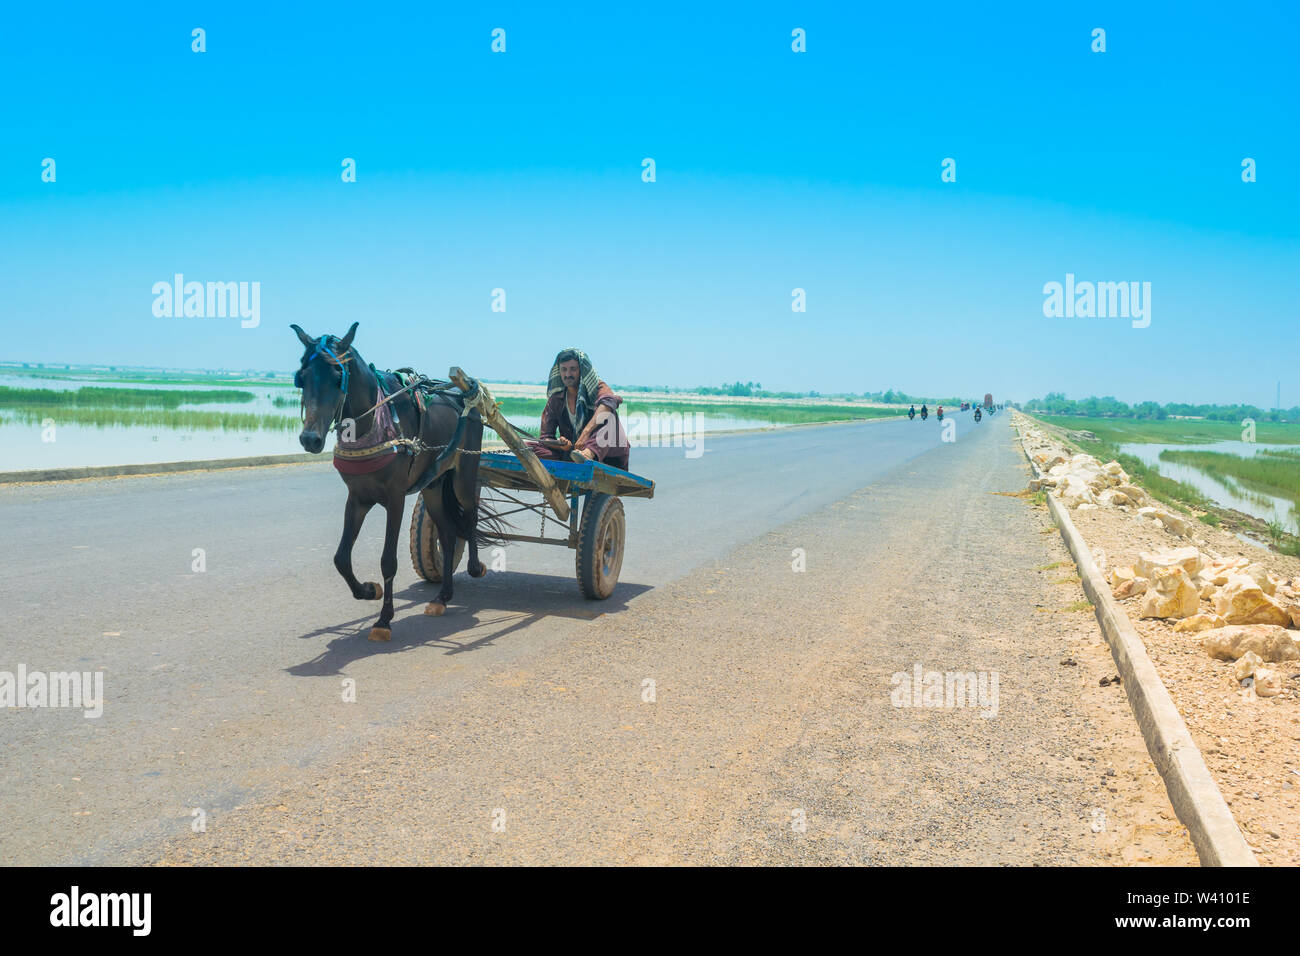 Rahim yar khan, Punjab,Pakistan-June 23,2019: a villager sitting on a horse cart on a high way,a man is driving a horse cart. Stock Photo